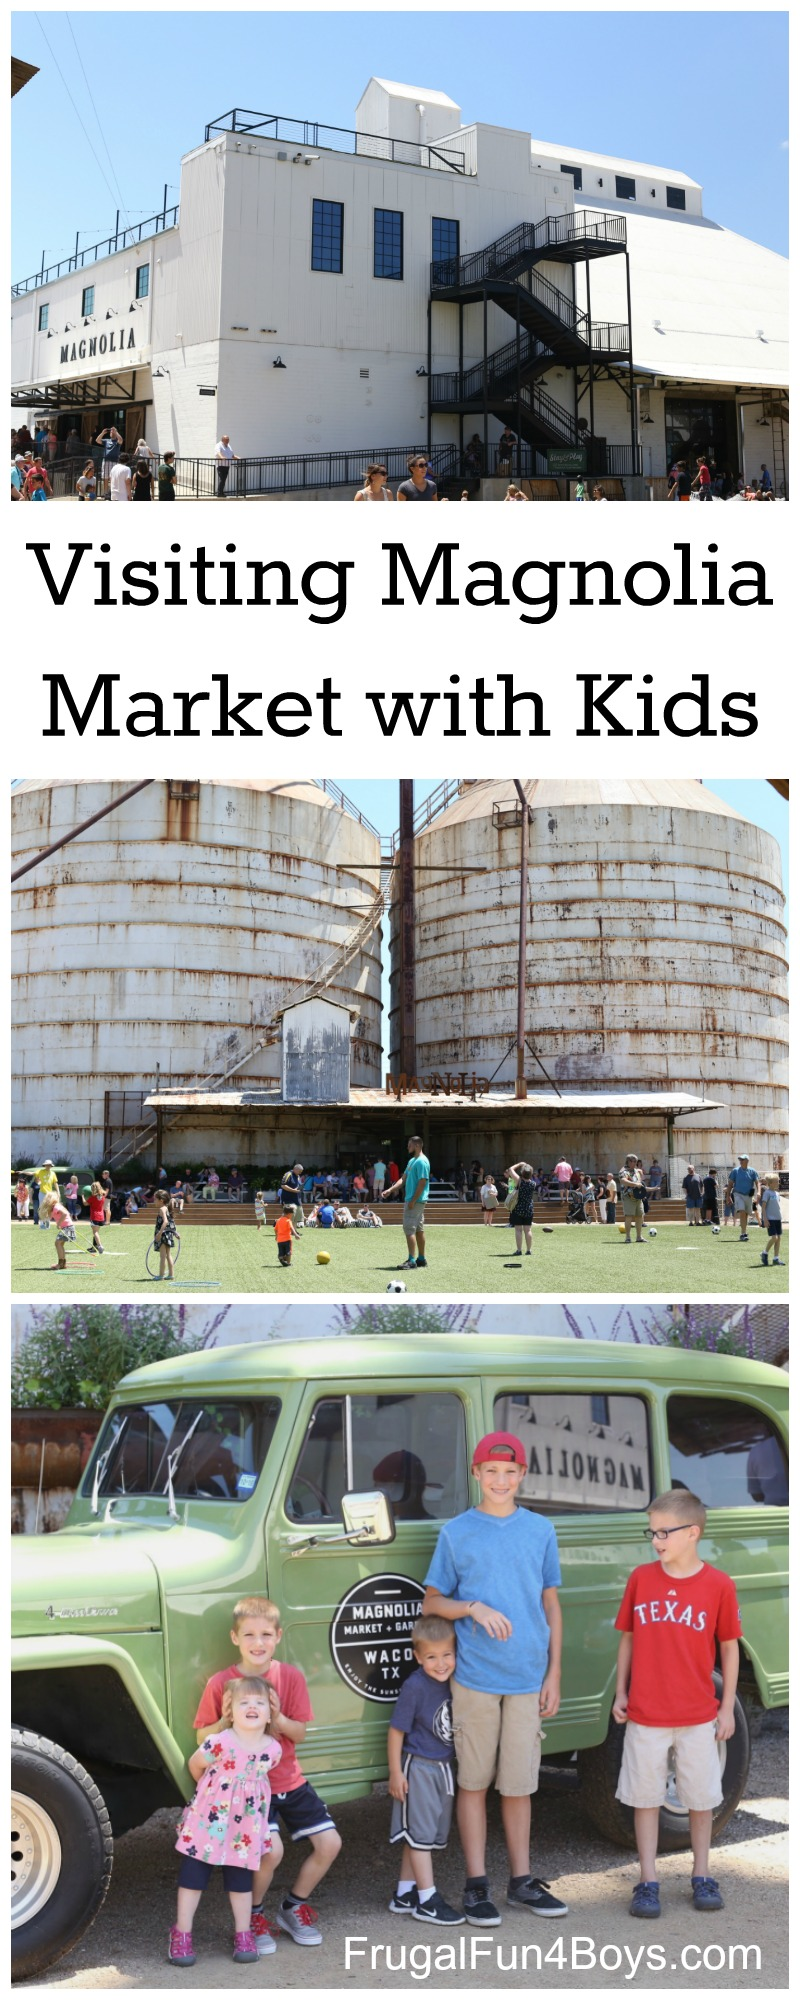 Visiting Magnolia Market with Kids